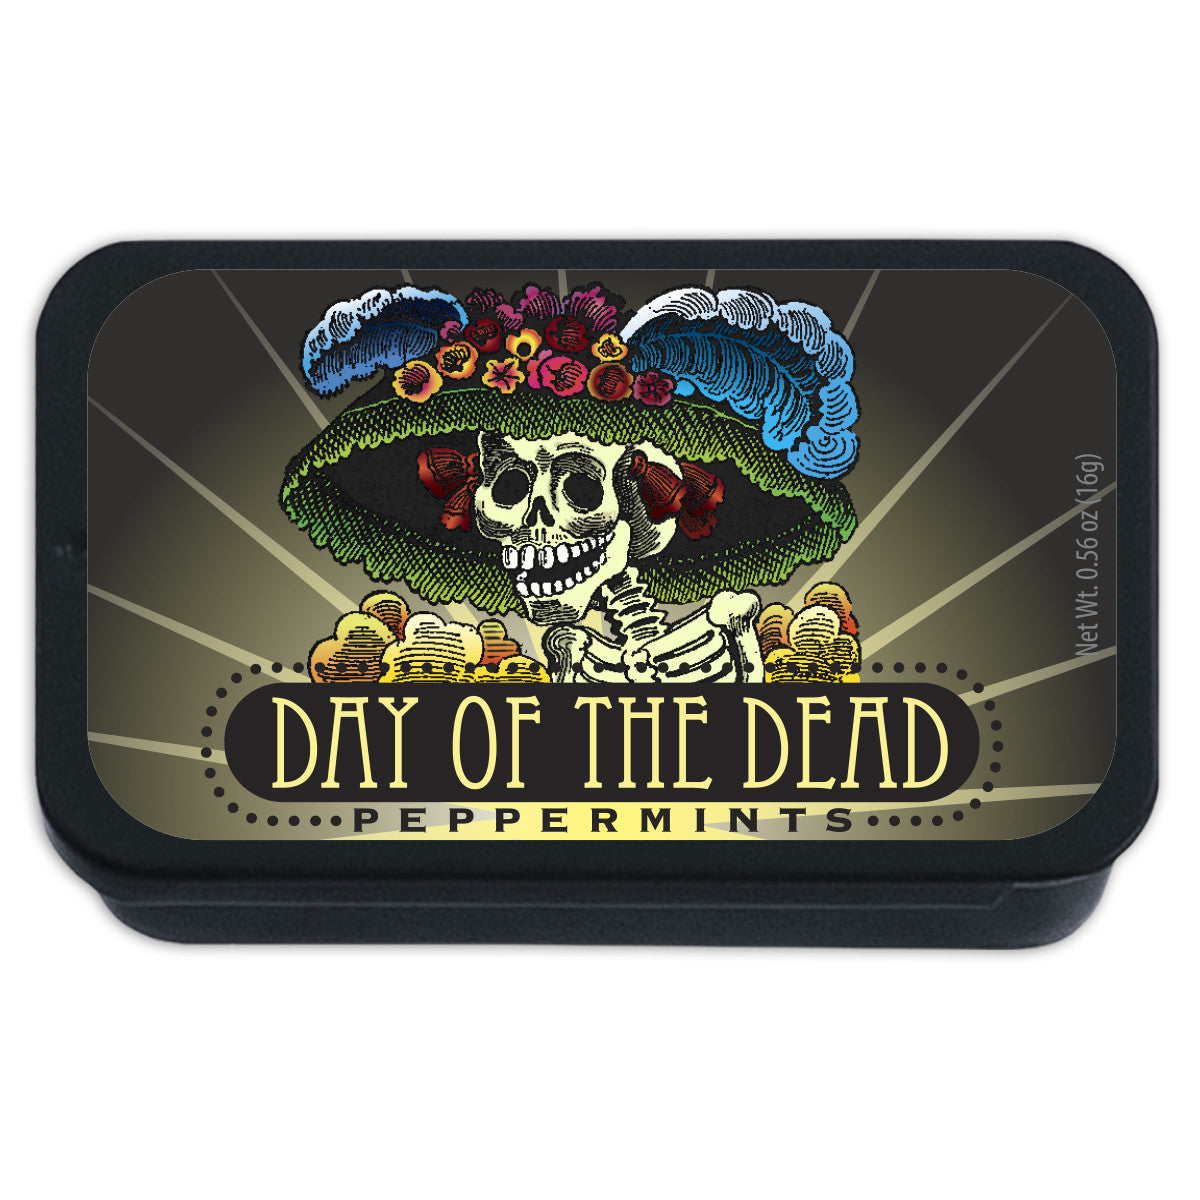 Day of the Dead - 0439S